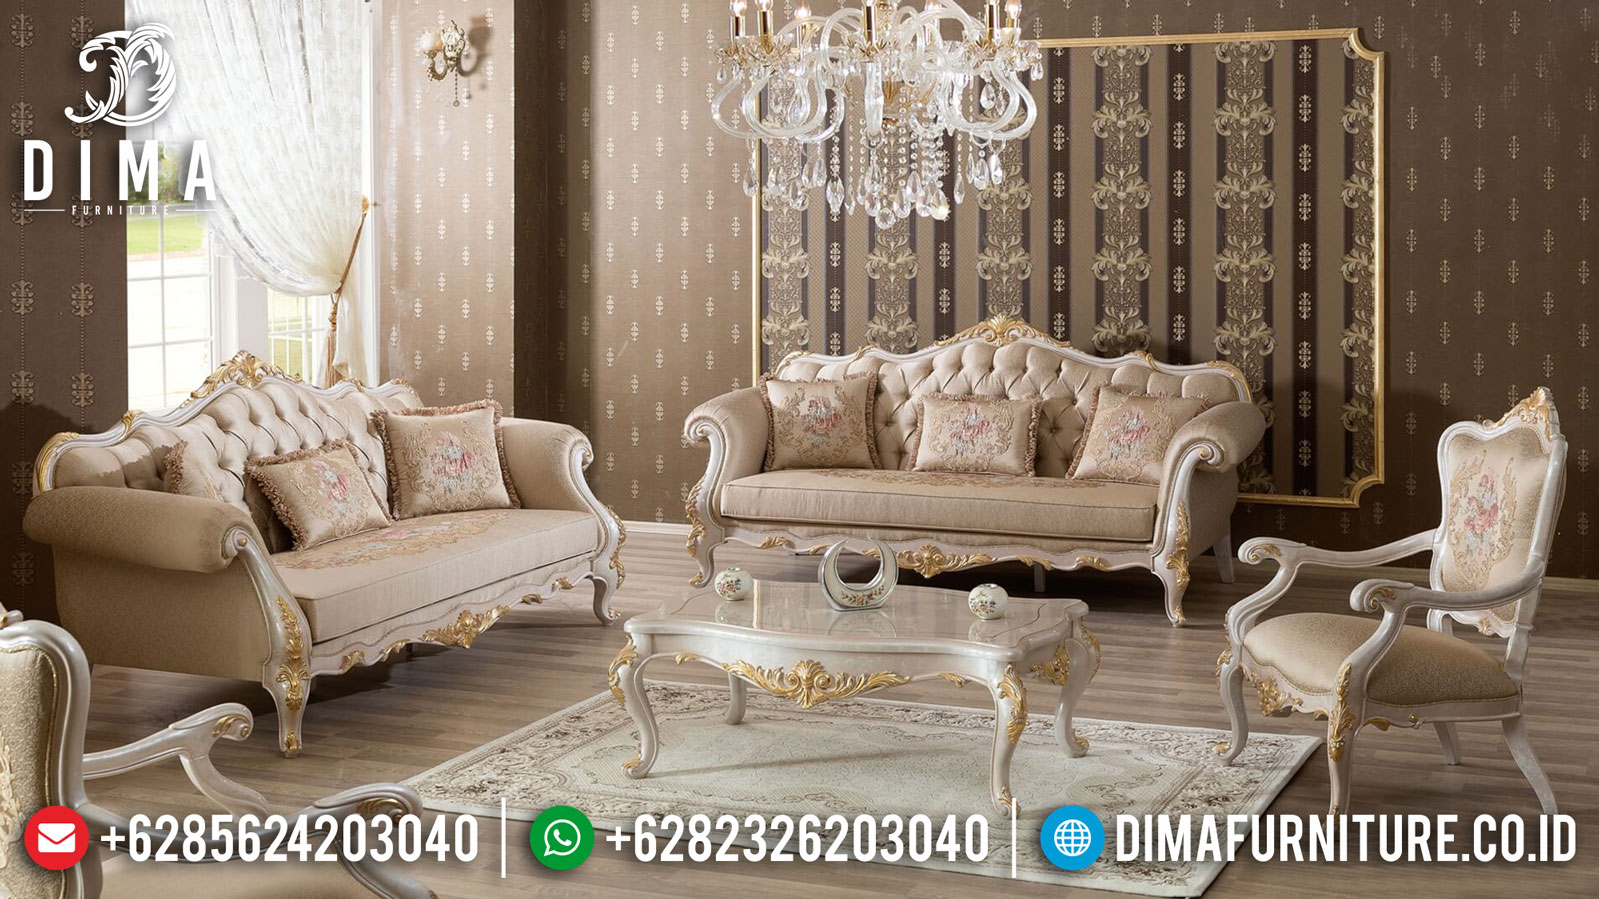 Set 3 2 1 Meja Sofa Tamu Mewah Luxury Classic Jepara New Model TTJ-1043